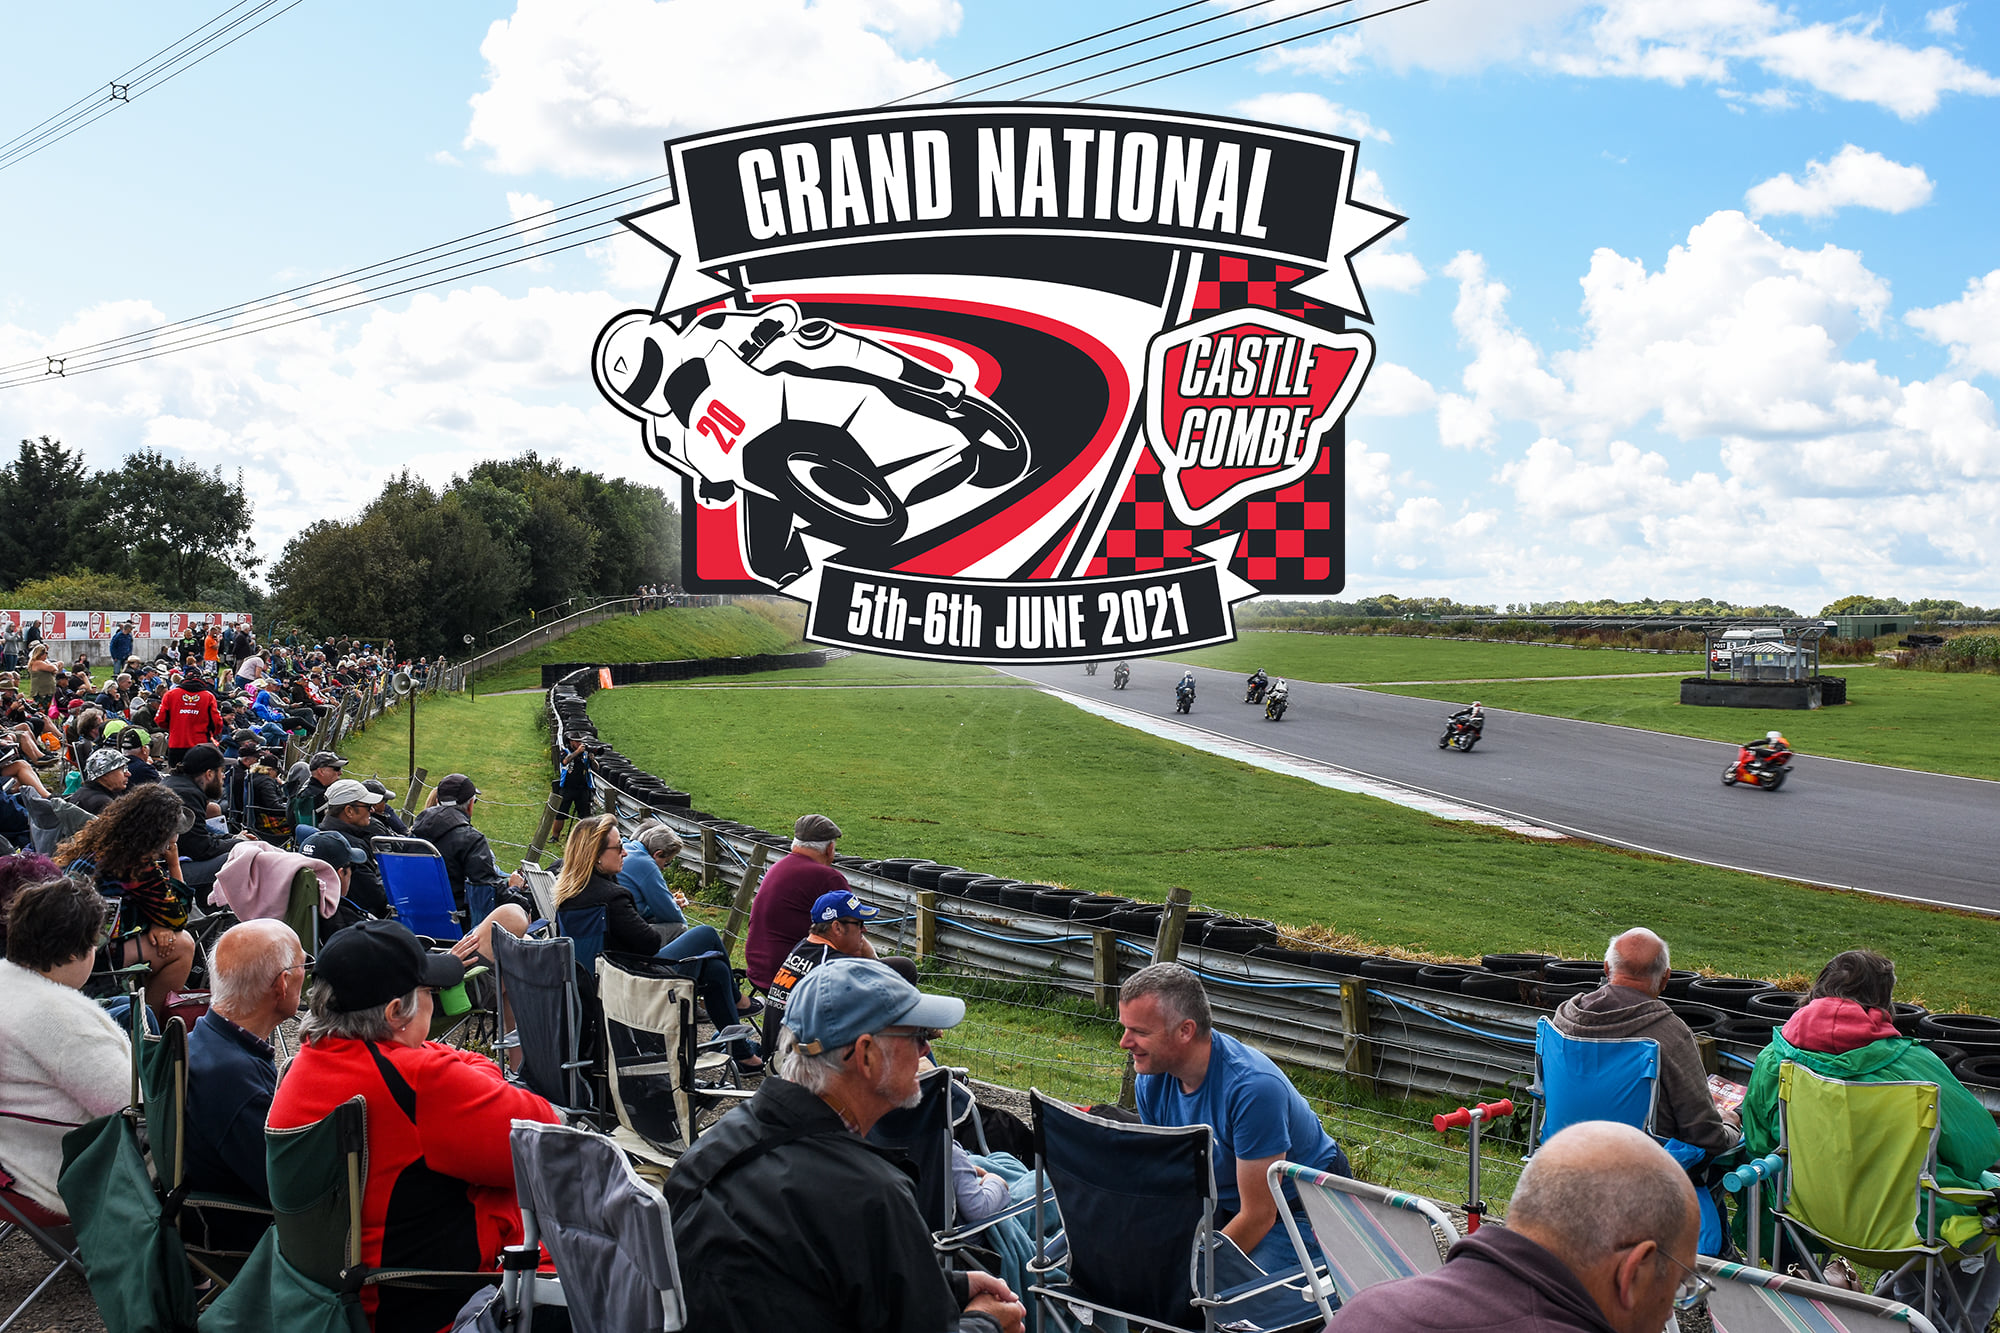 NG GRAND NATIONAL TIMETABLE SCHEDULE OF EVENTS PUBLISHED